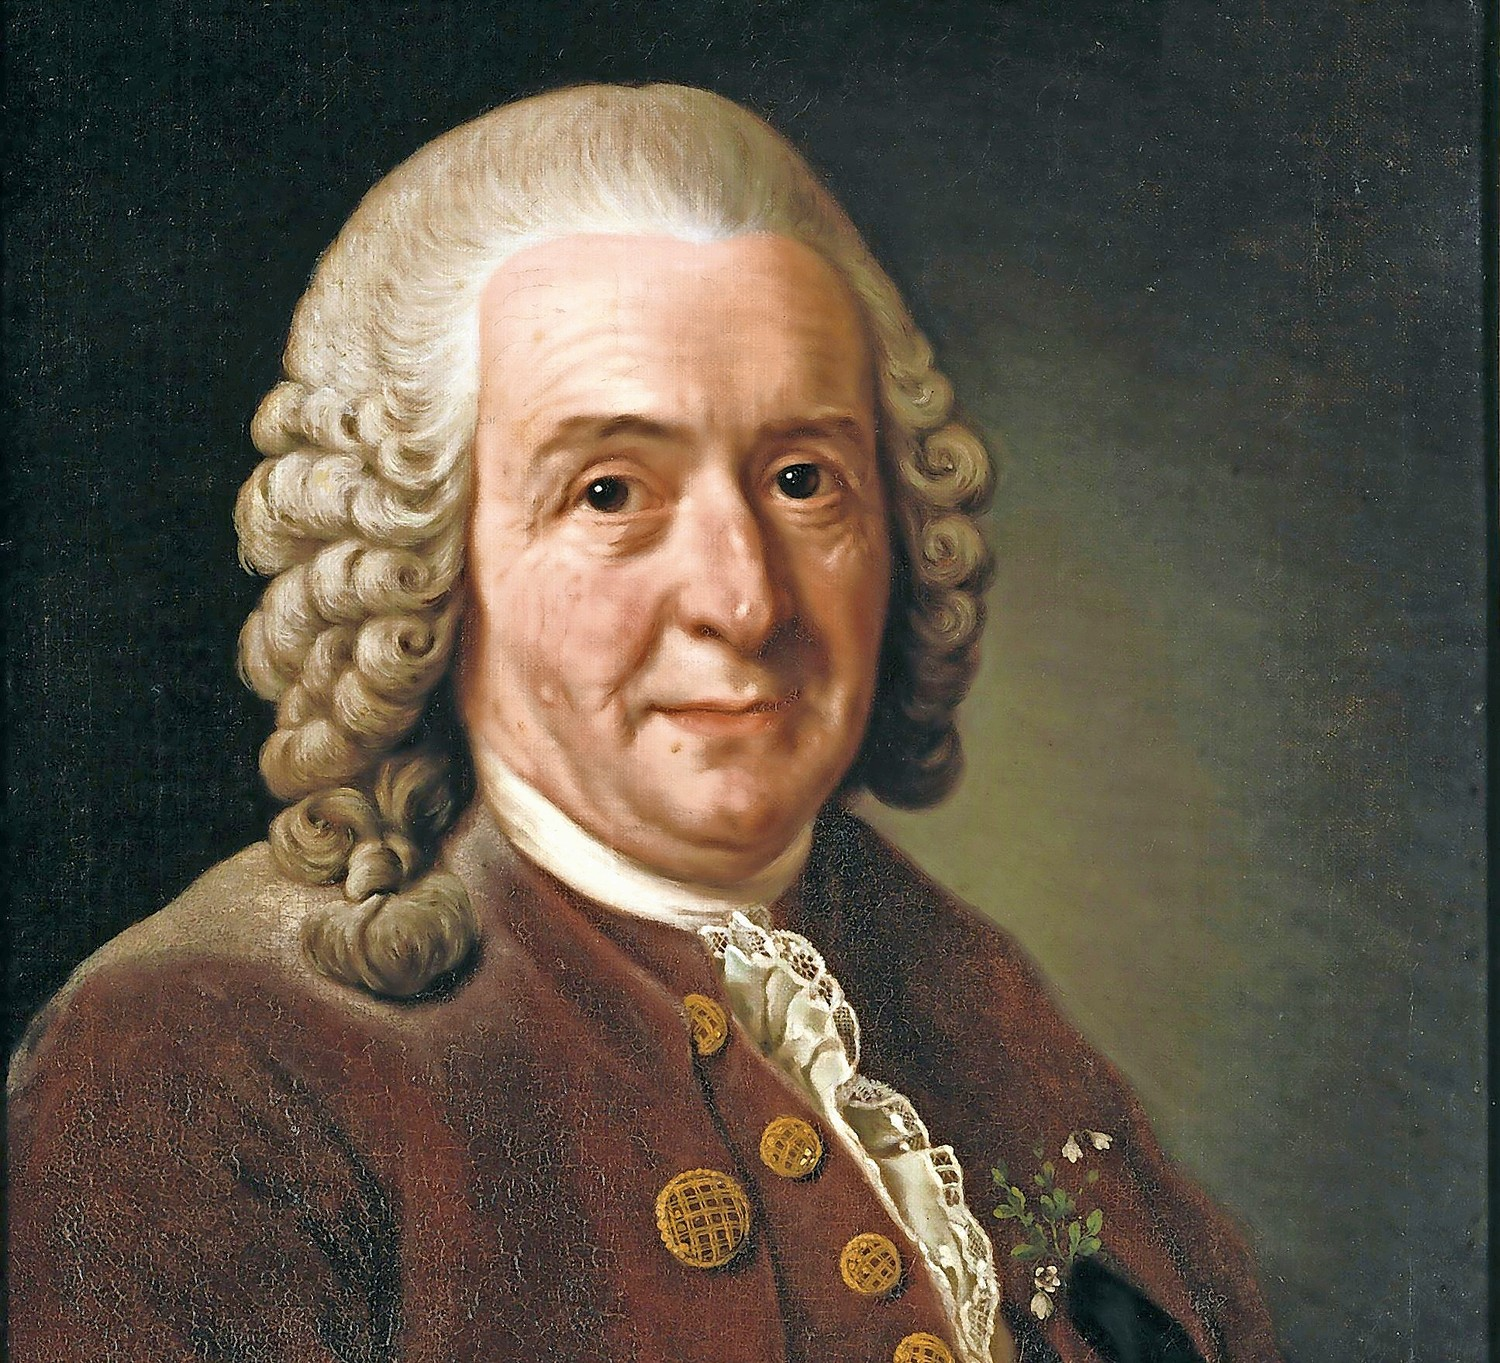 Carl Linnaeus was a Swedish doctor who loved plants. In fact, alot of the credit for how we classify plants today is because of his work - and others.